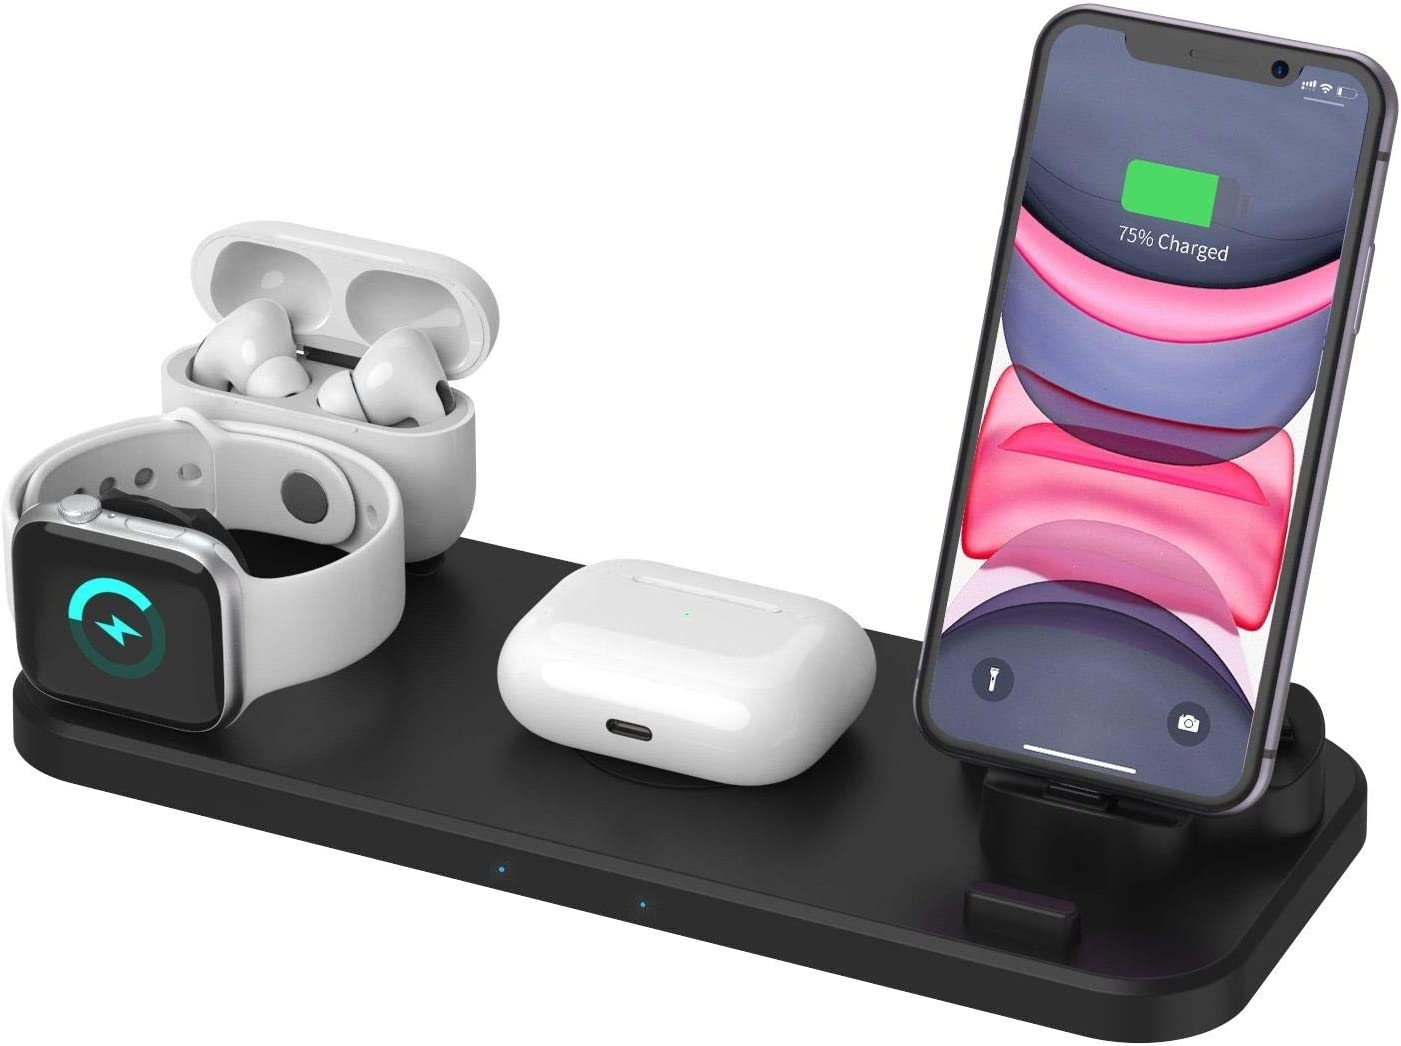 Wireless Charger 6 in 1 Compatible with Apple Watch & AirPods 2 & Pencil Charging Dock Station, iWatch Series 5/4/3/2/1, iPhone 11/11 Pro Max/XR/XS Max/Xs Nightstand Mode Fast QC 3.0 Adapter Included